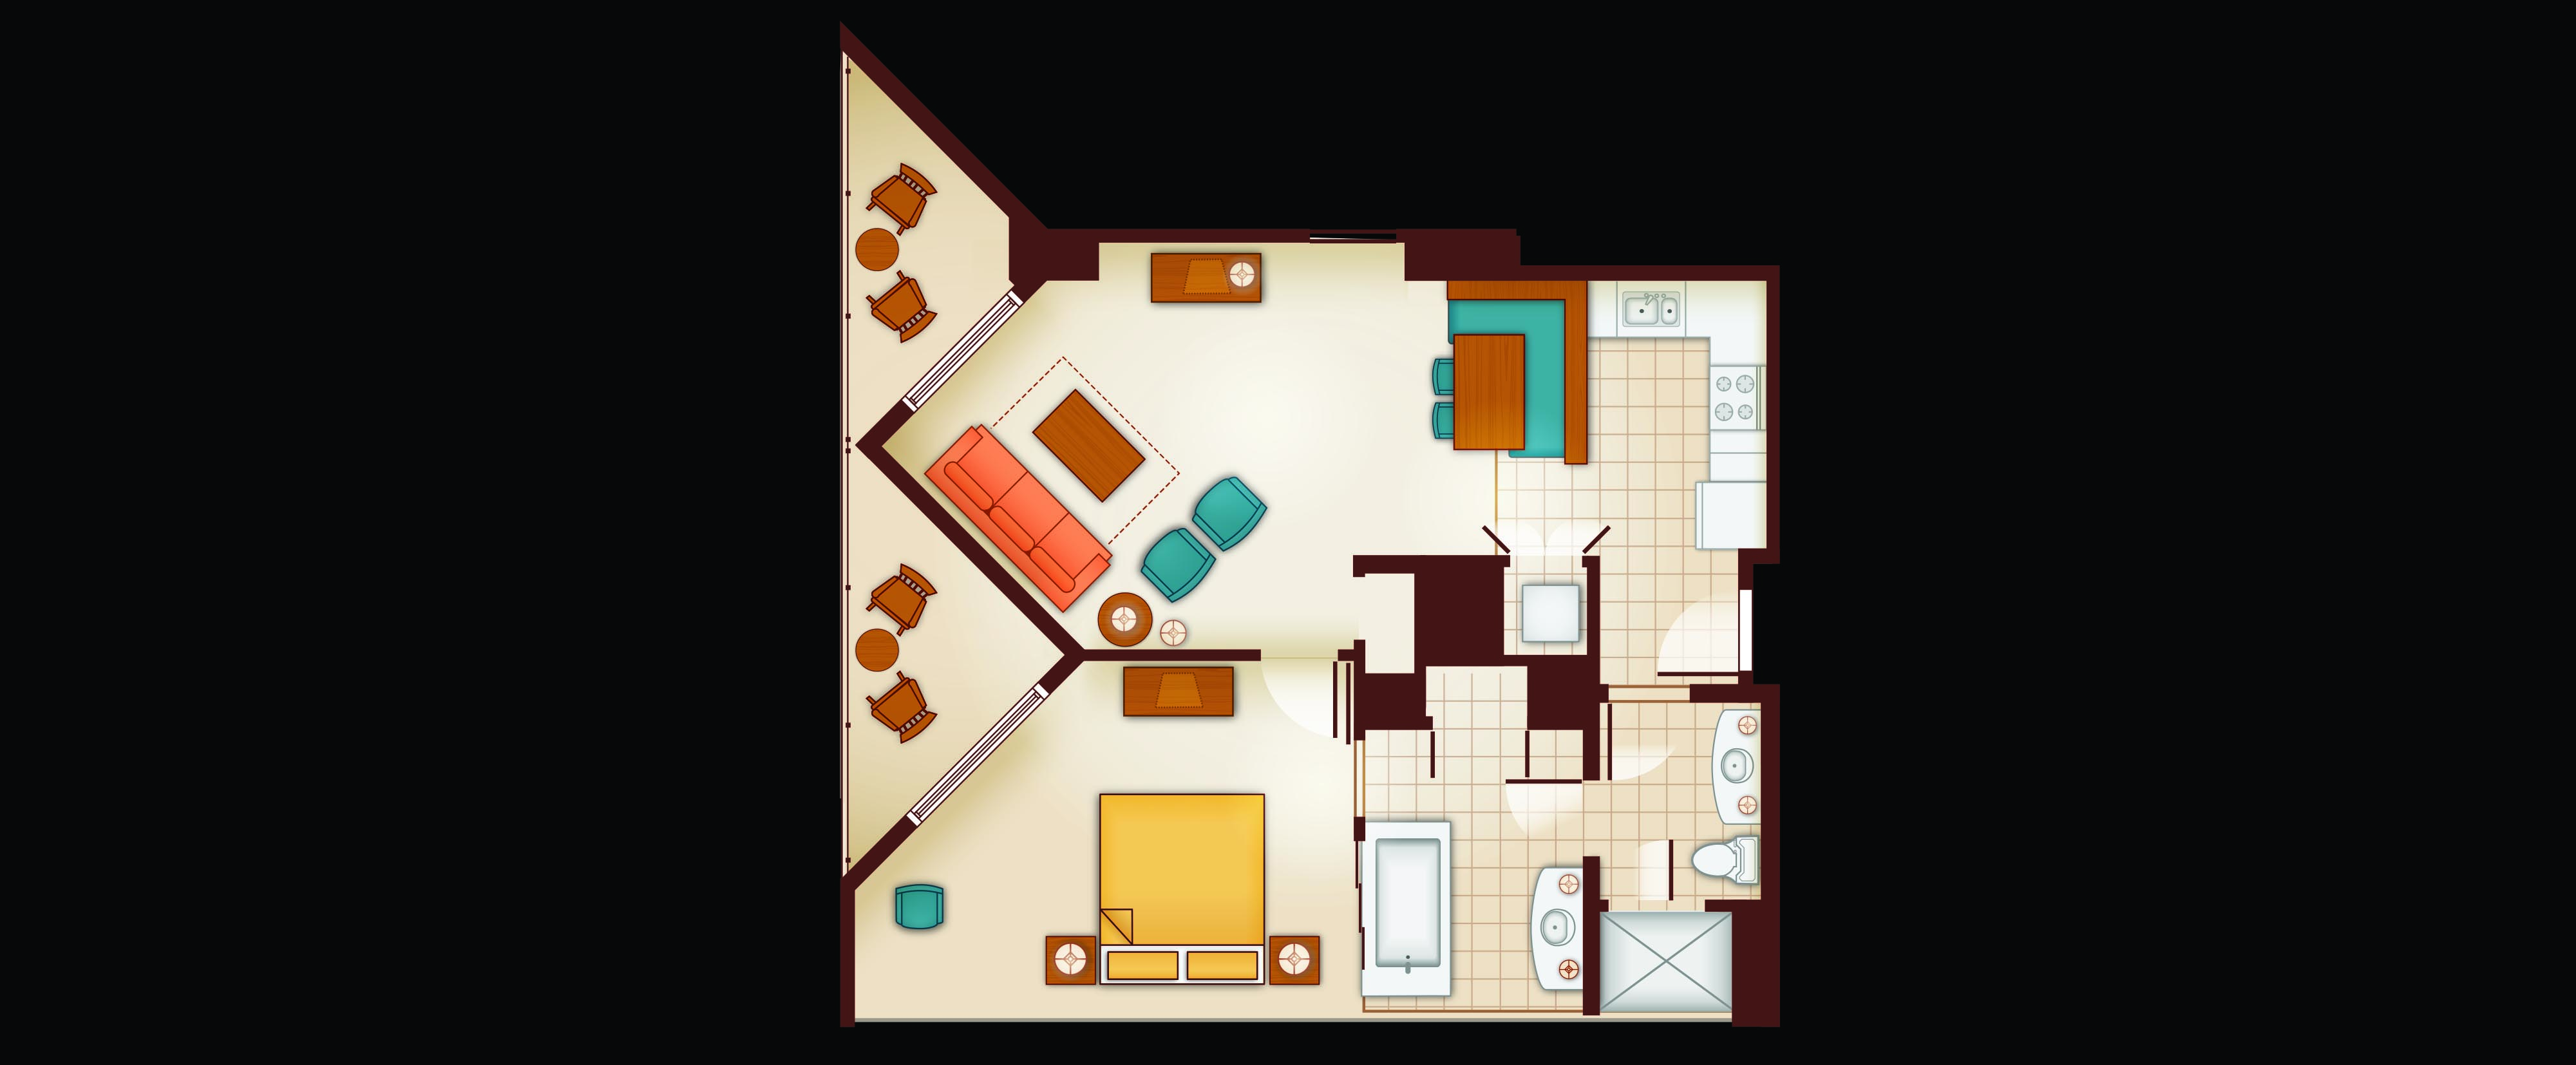 Floor Plan of a 1-Bedroom Villa